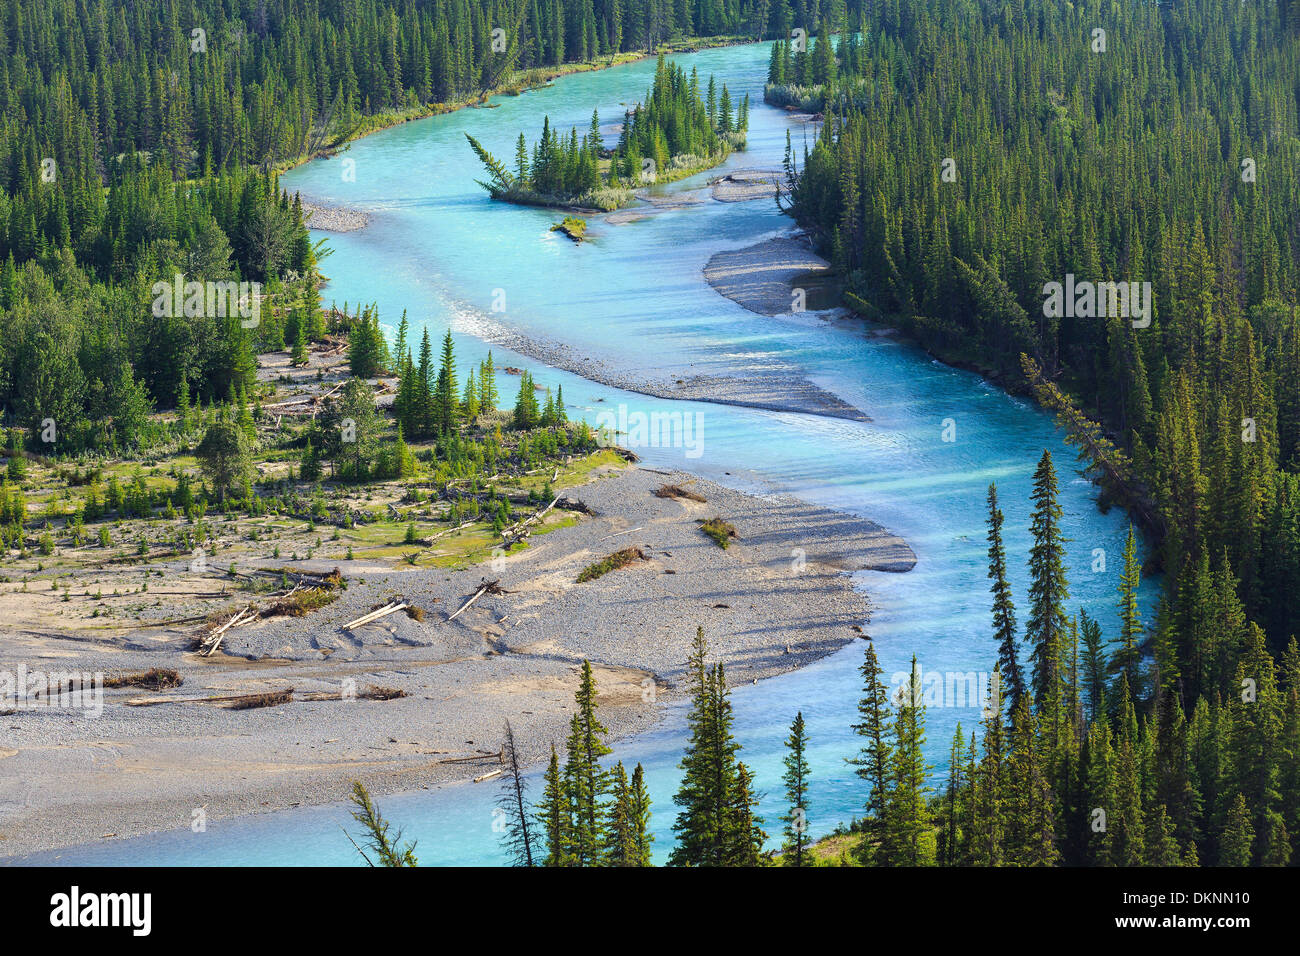 Bow River, Banff National Park, Alberta, Canada - Stock Image